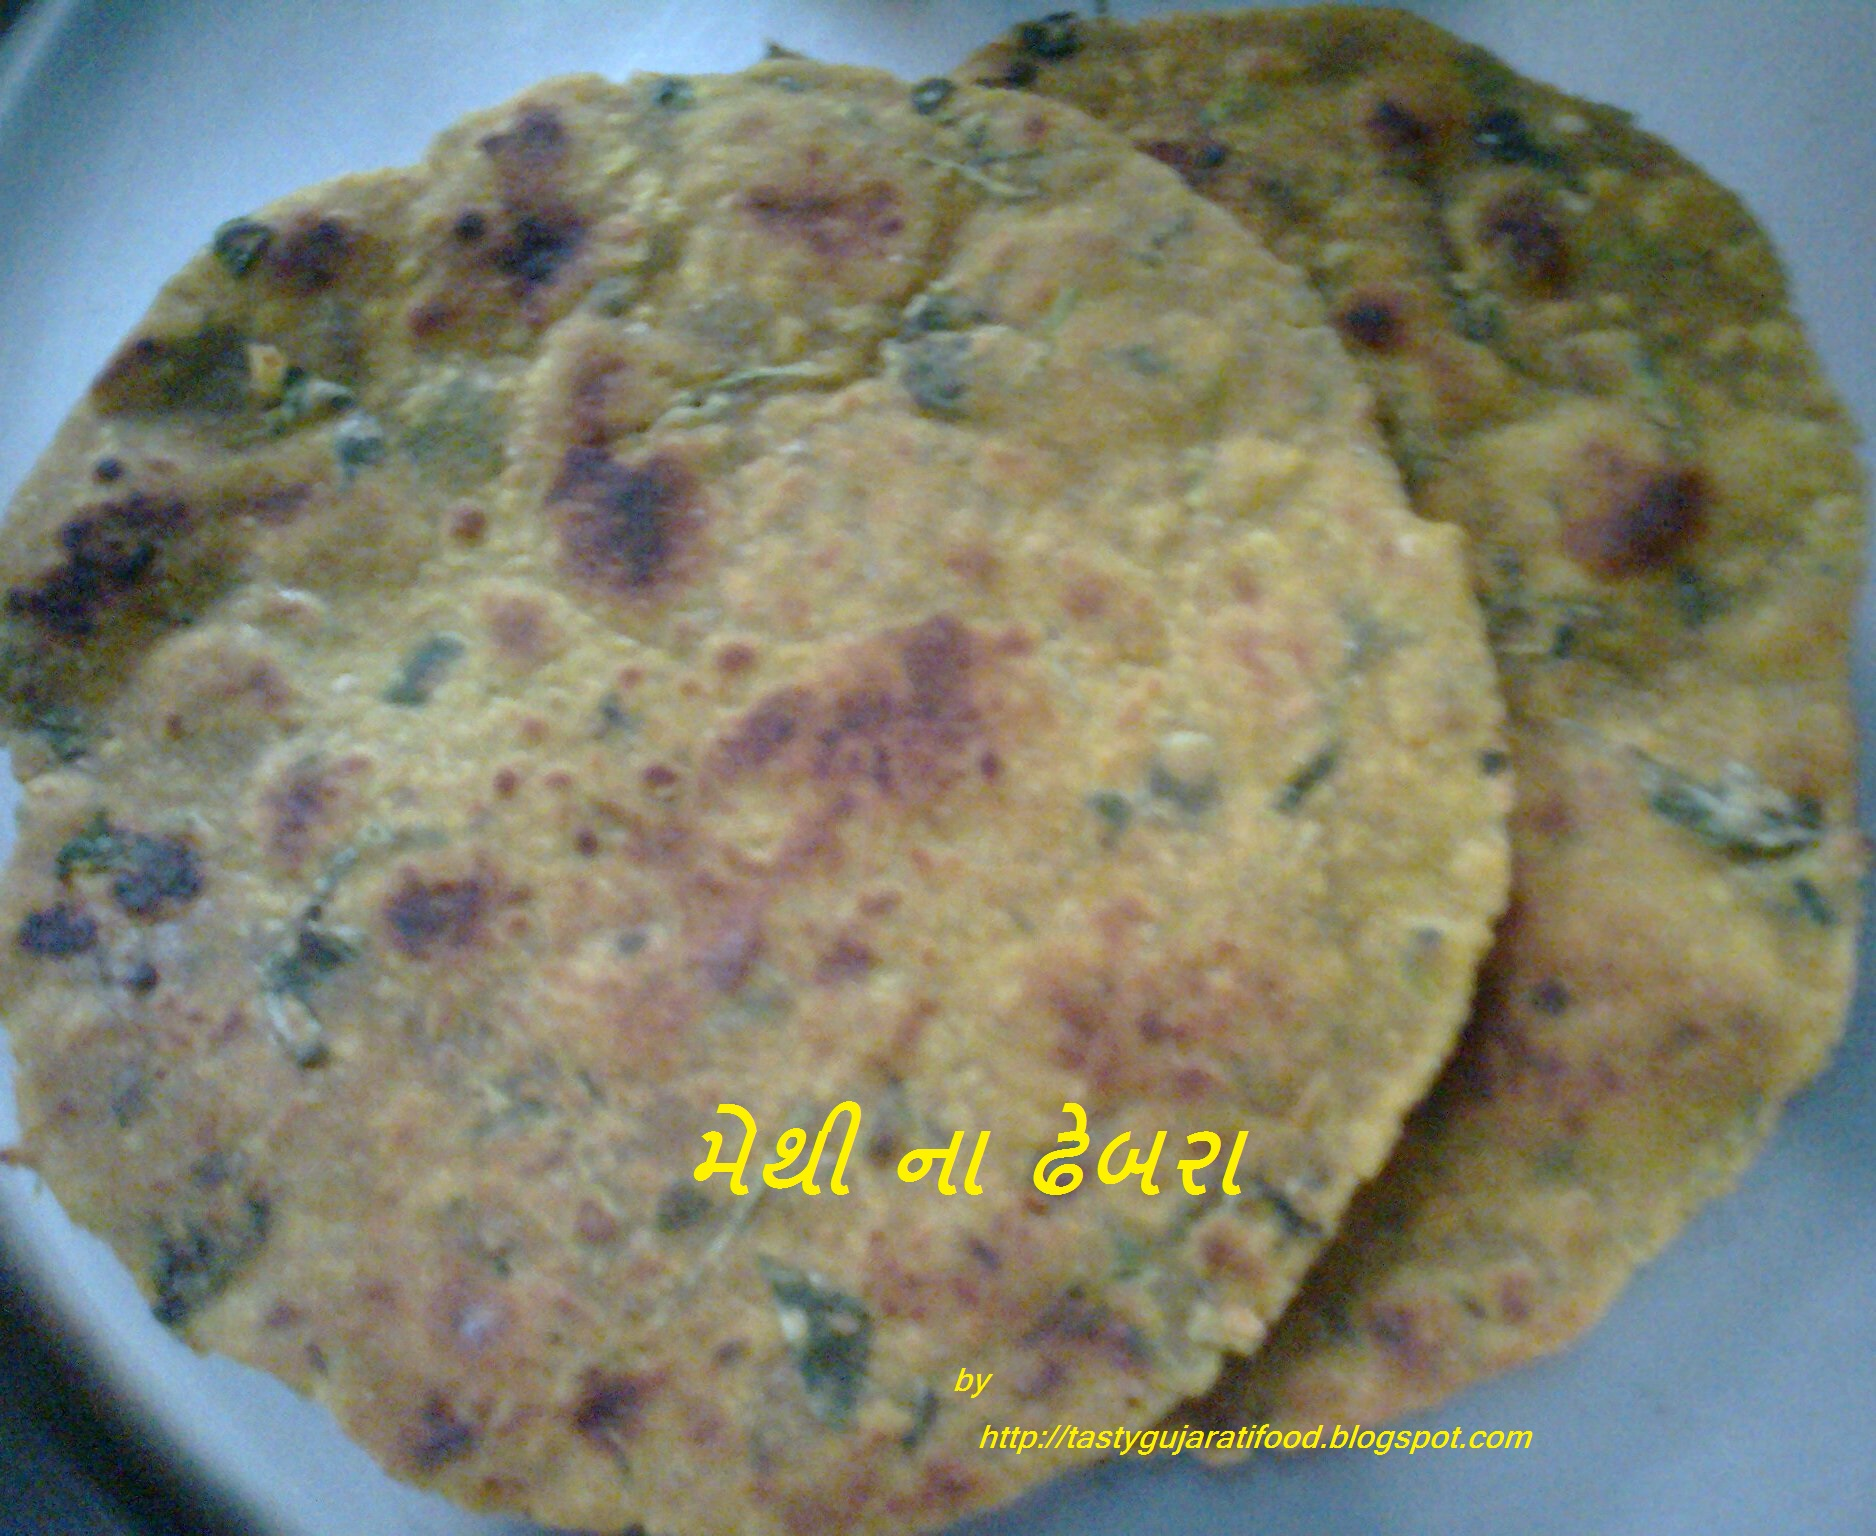 Shitla satam aatham recipe list gujarati food recipes blog methi thepla dhebra recipe forumfinder Image collections